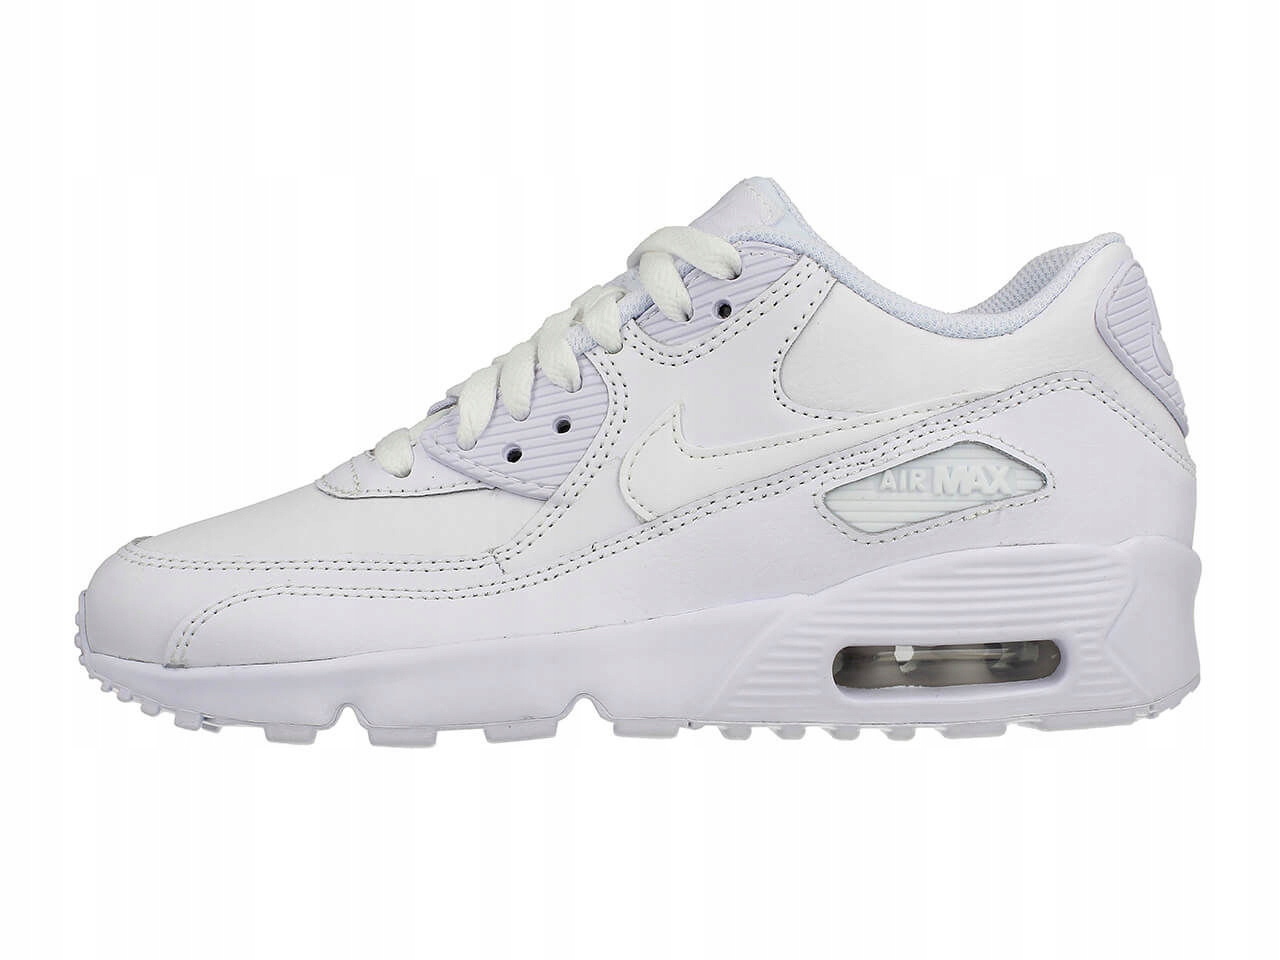 Oryginalne Nike Air Max 90 Leather GS roz. 37,5